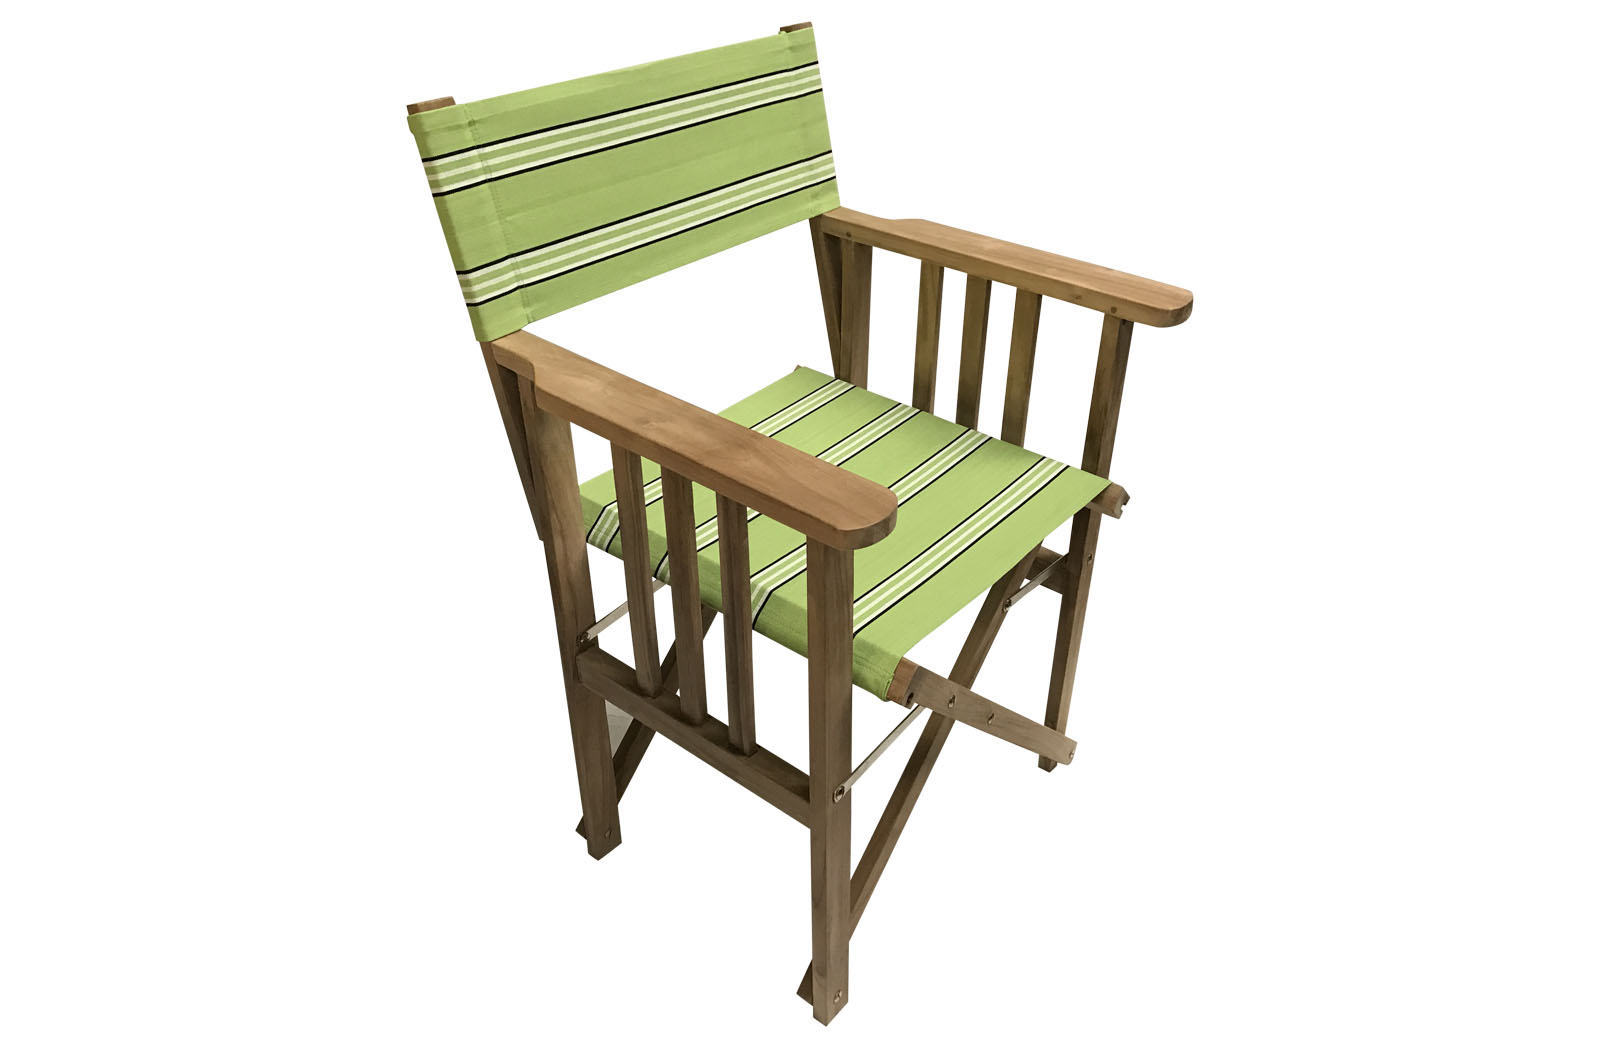 Sprinting Lime Green Teak Directors Chair